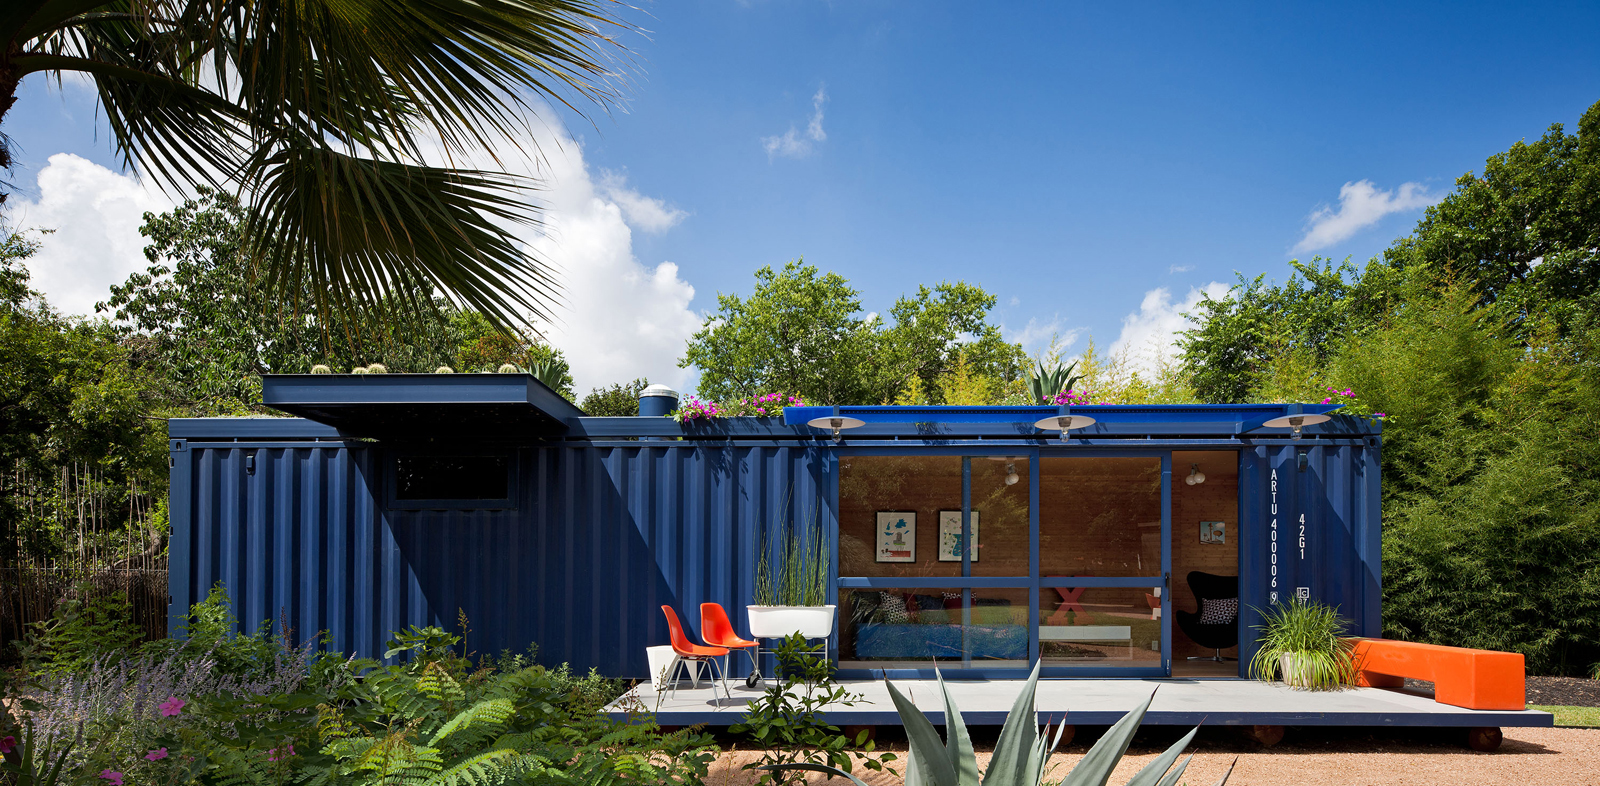 a living work of shipping container art - buy a shipping container